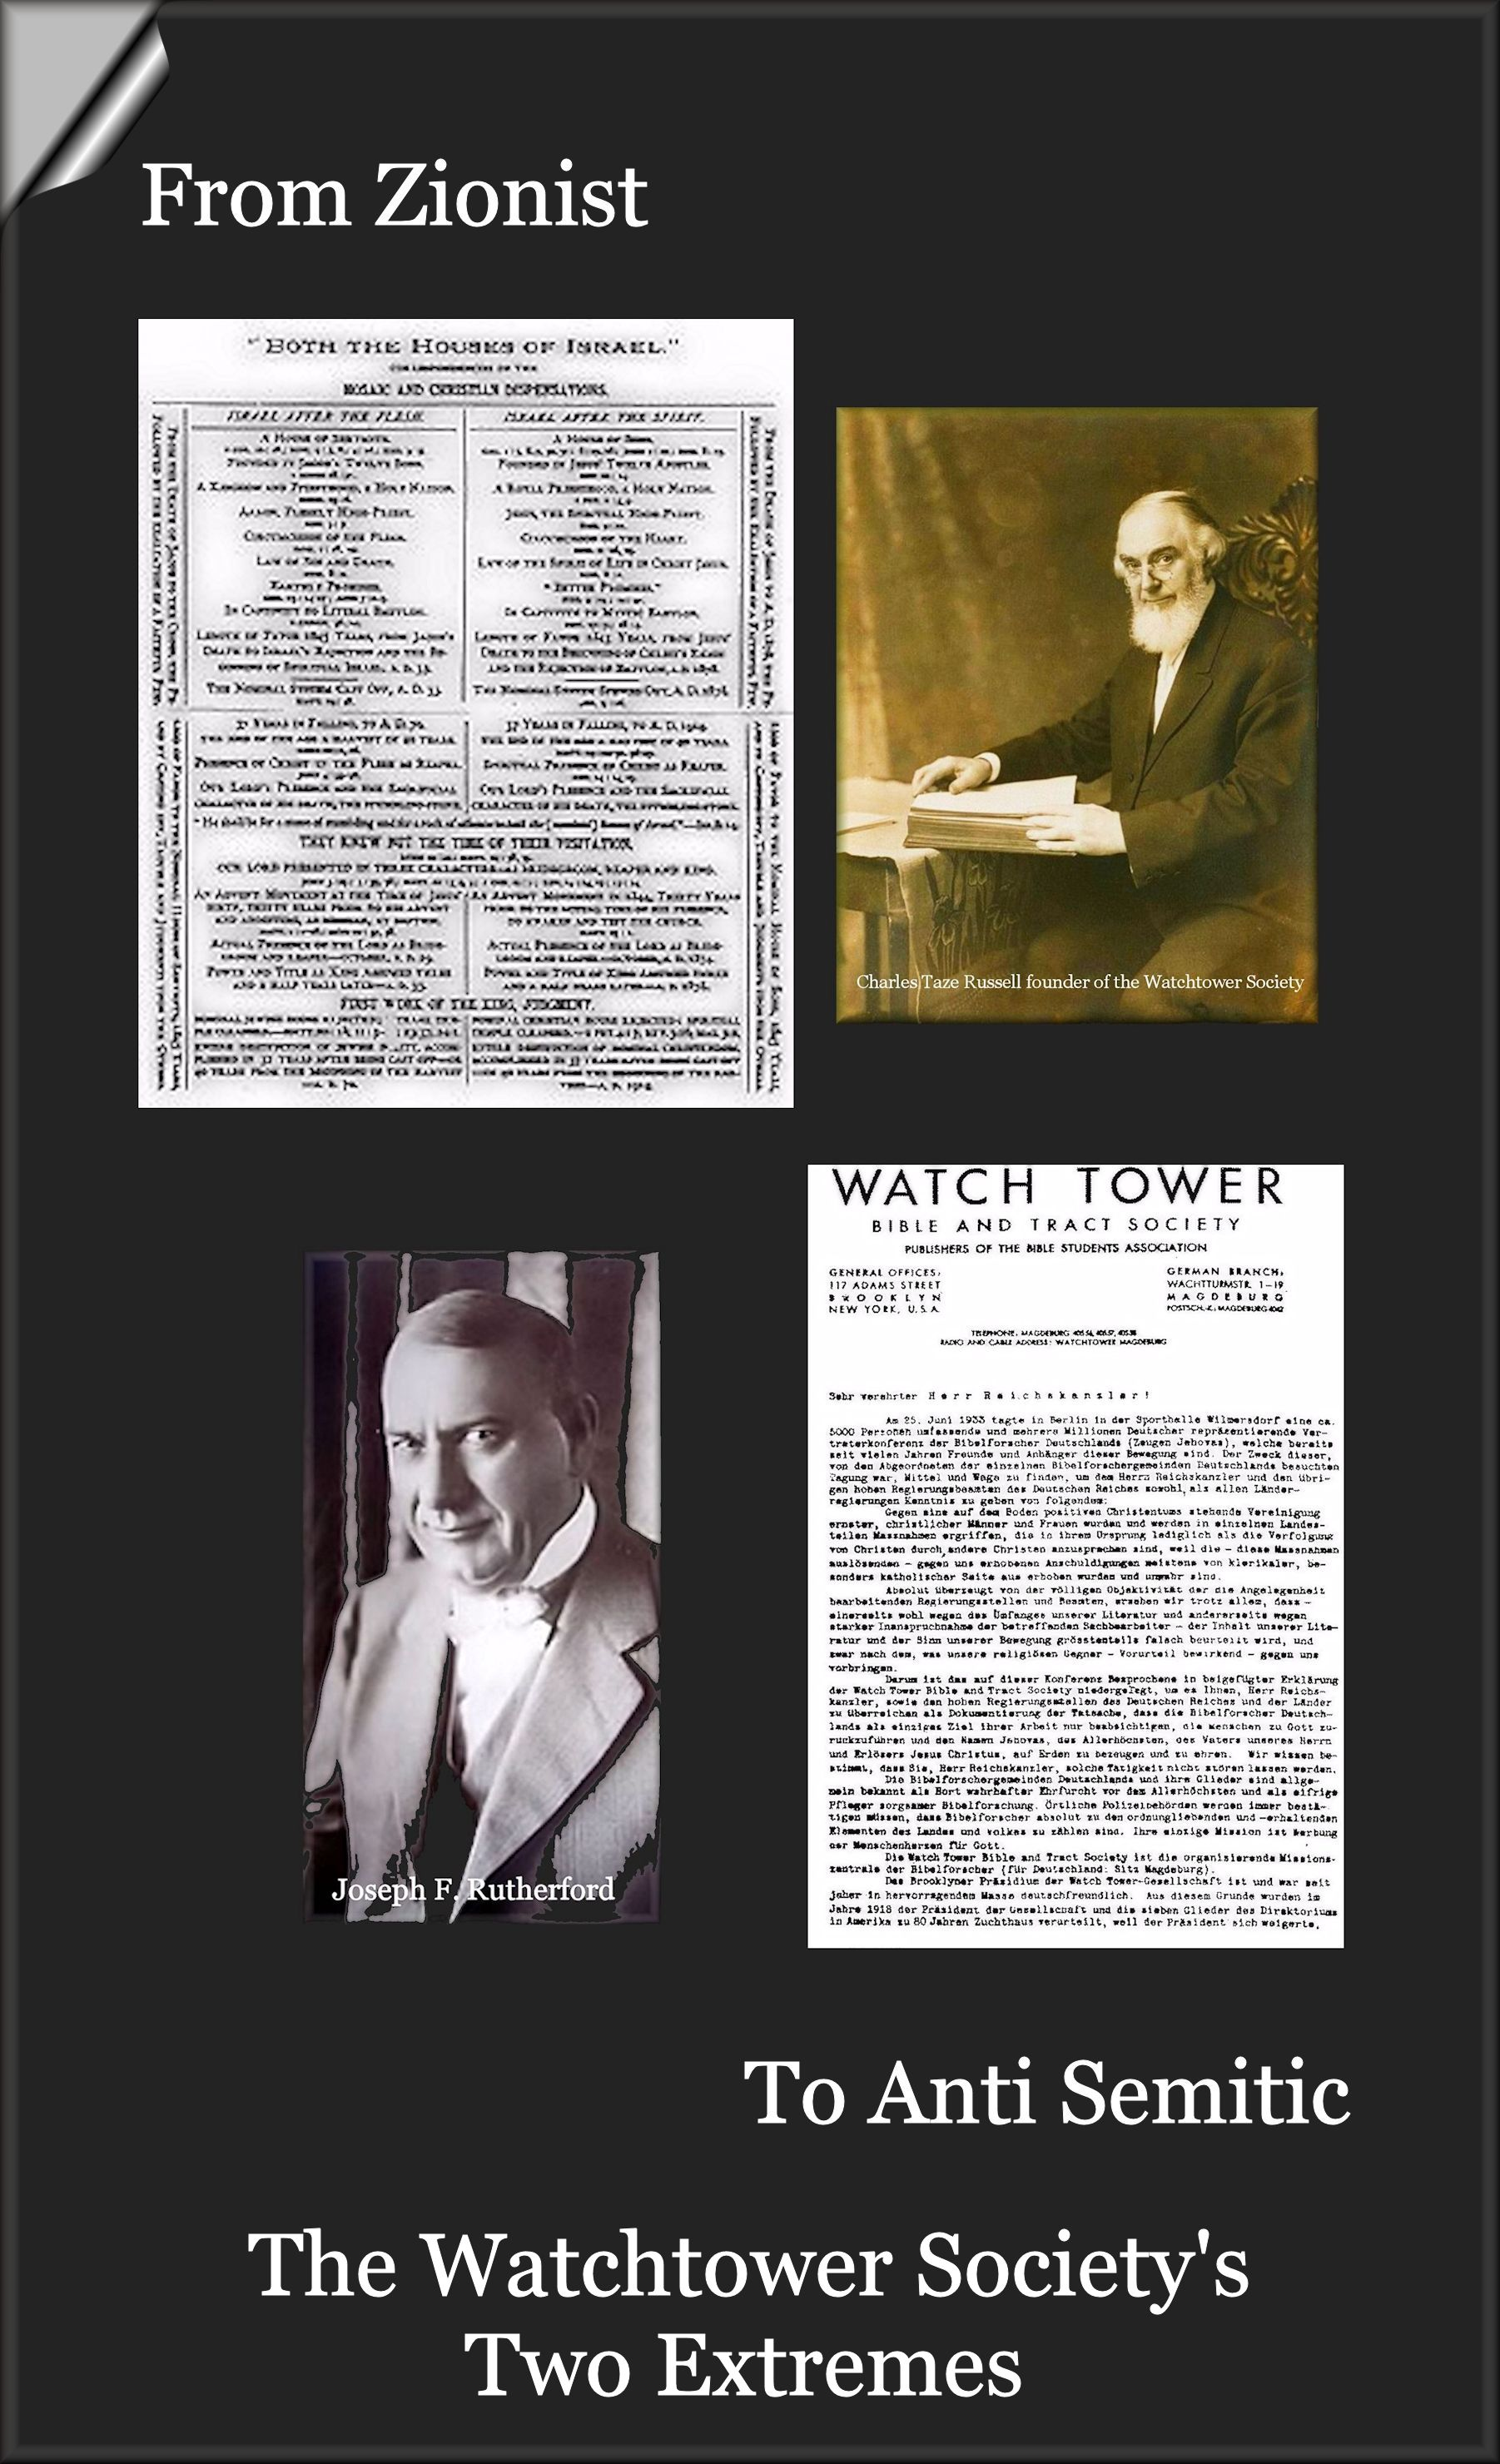 The Watchtower Society-The Two Extremes And The Schism That